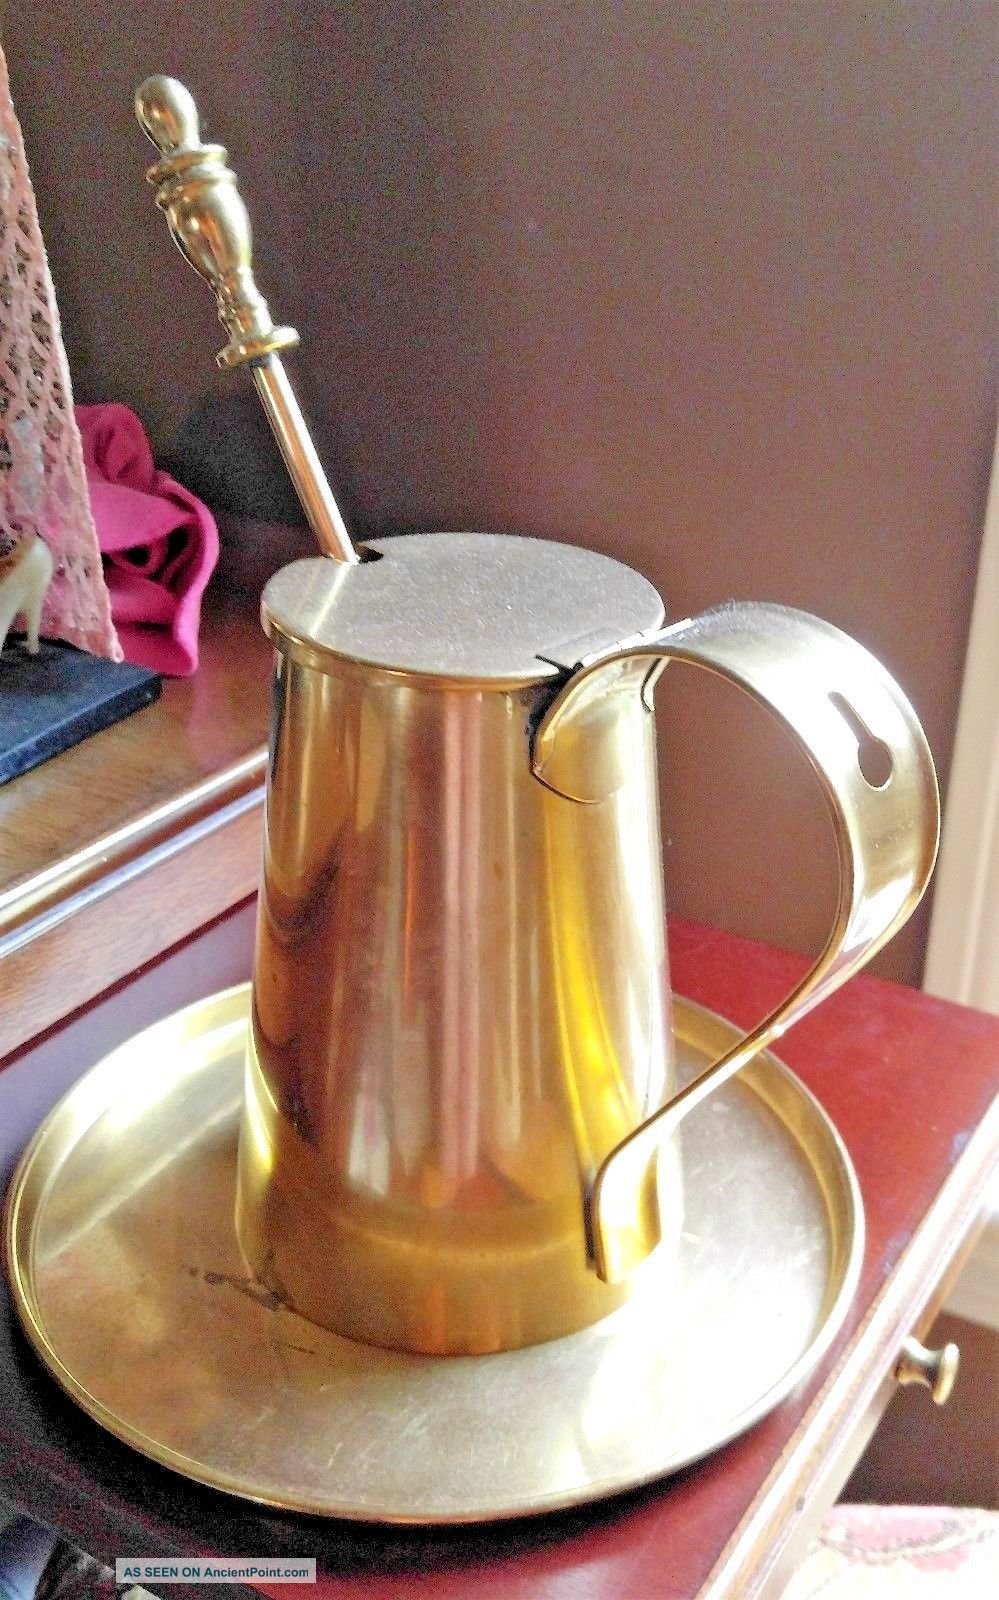 Cape Cod Shop Brass Fire Starter Smudge Pot Pumace And Wand Drip Plate Hearth Ware photo